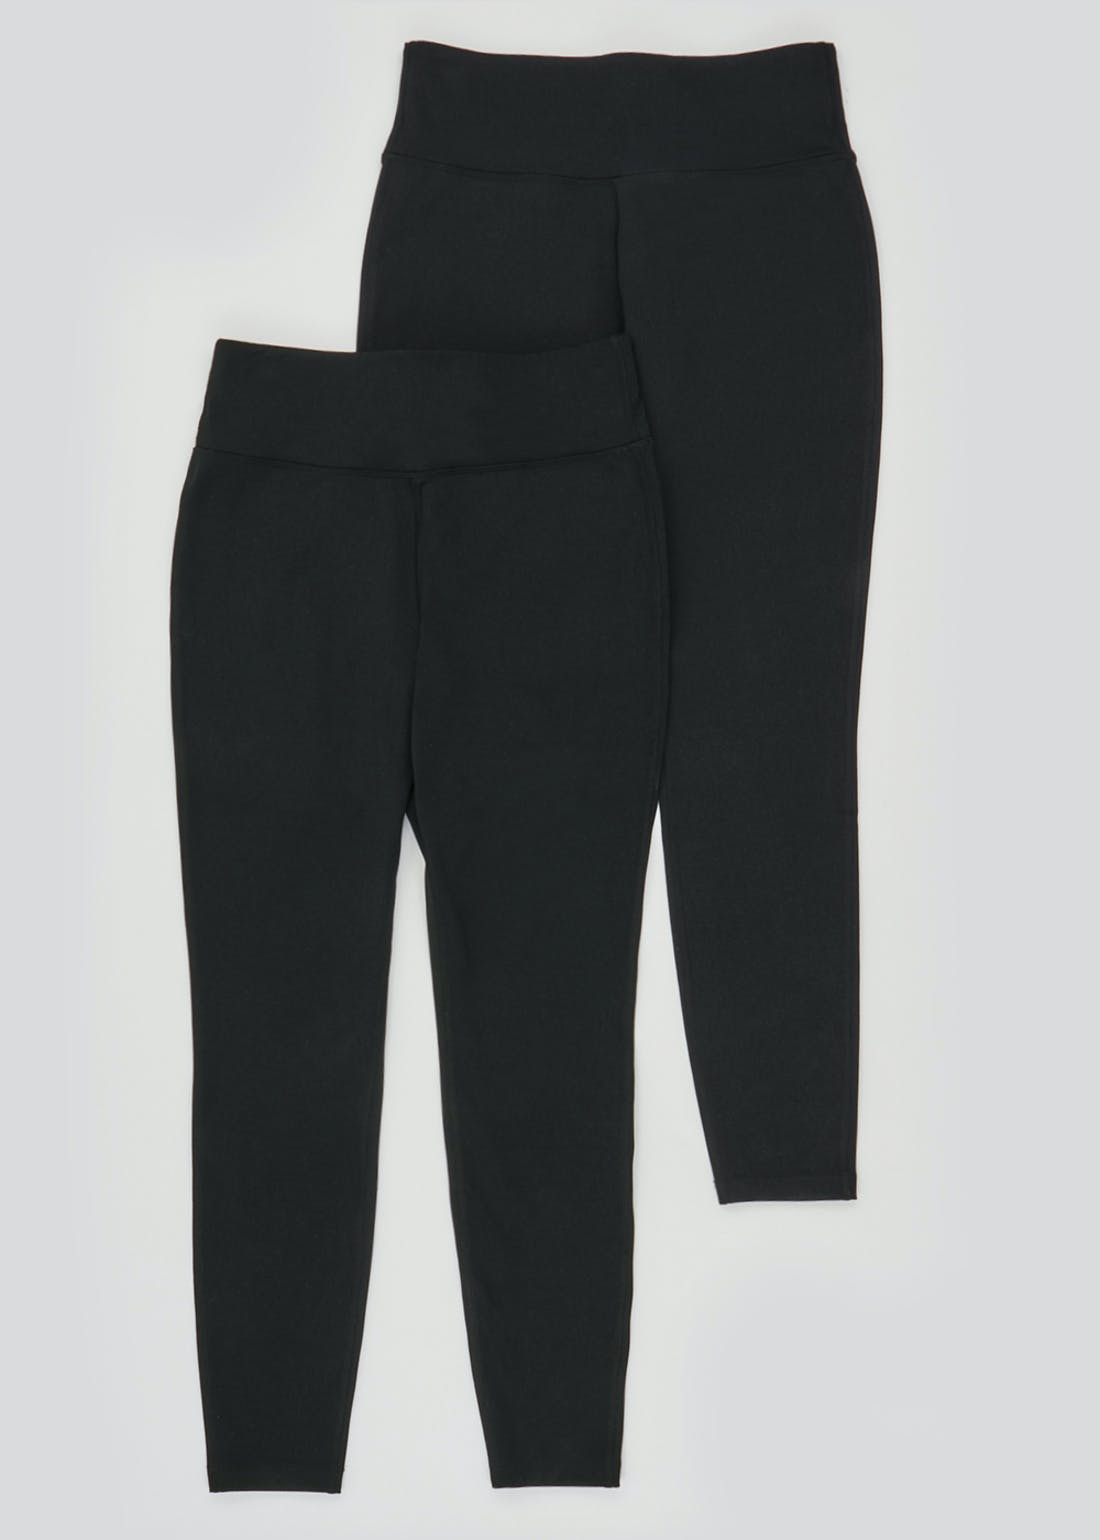 Souluxe 2 Pack Black Gym Leggings